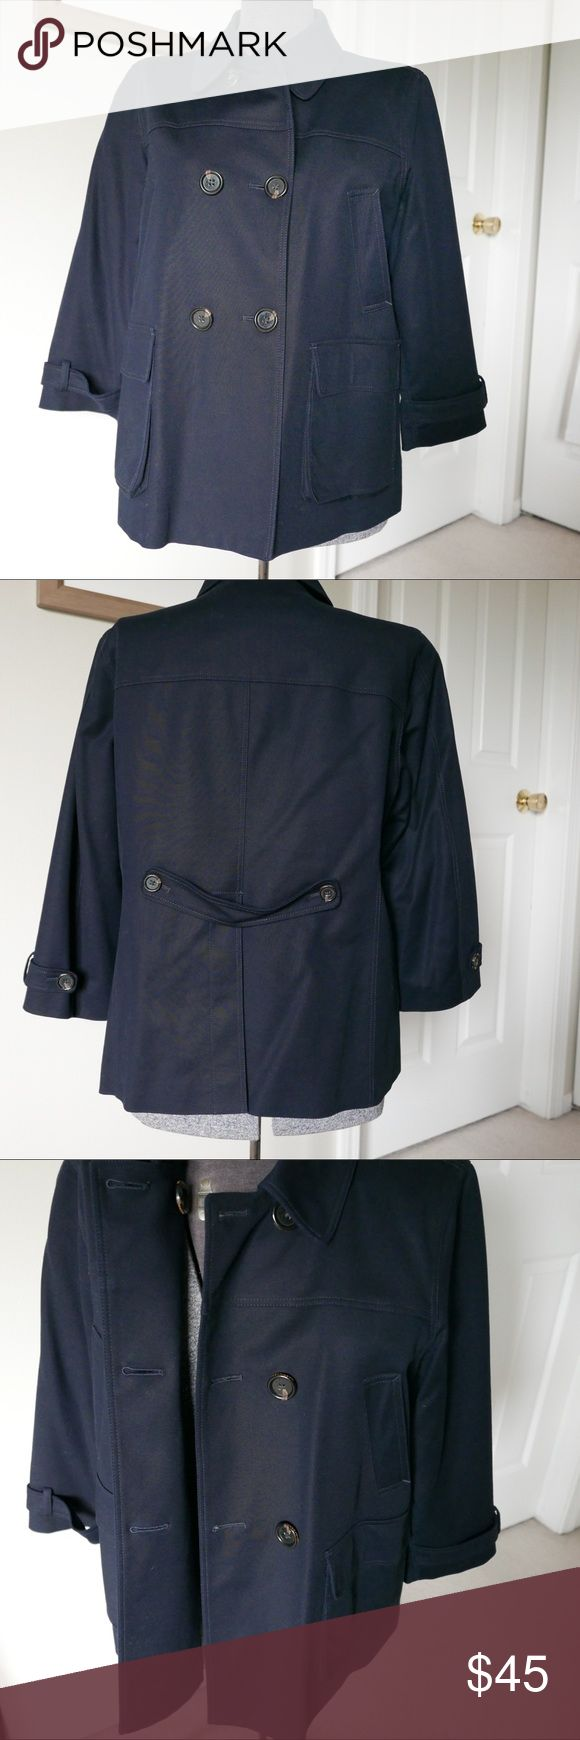 Navy pea coat Martin & Osa Beautiful tailored navy pea coat. 3/4 sleeves, tortoise buttons, great details. Great condition ( a few cat hairs will be present - no matter how hard I try I can't get them all off) Martin + Osa Jackets & Coats Pea Coats